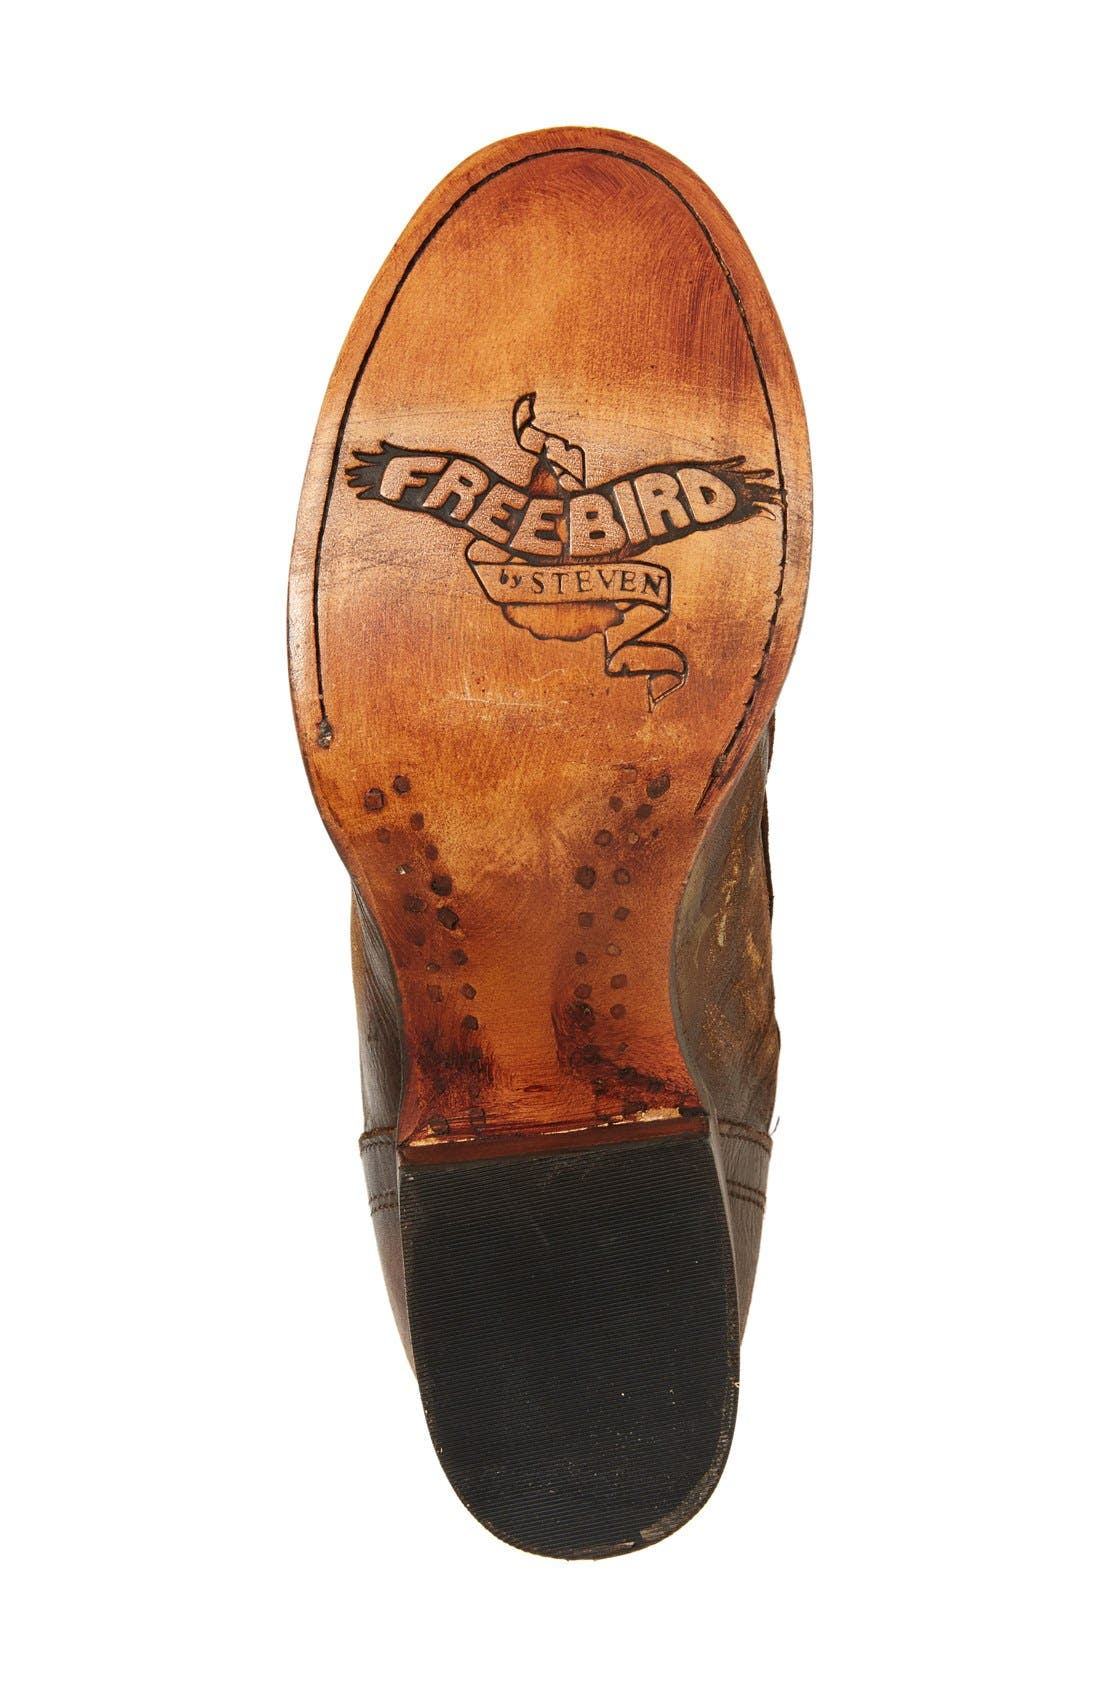 Alternate Image 4  - Freebird by Steven Arlo Lace-Up Knee High Boot (Women)